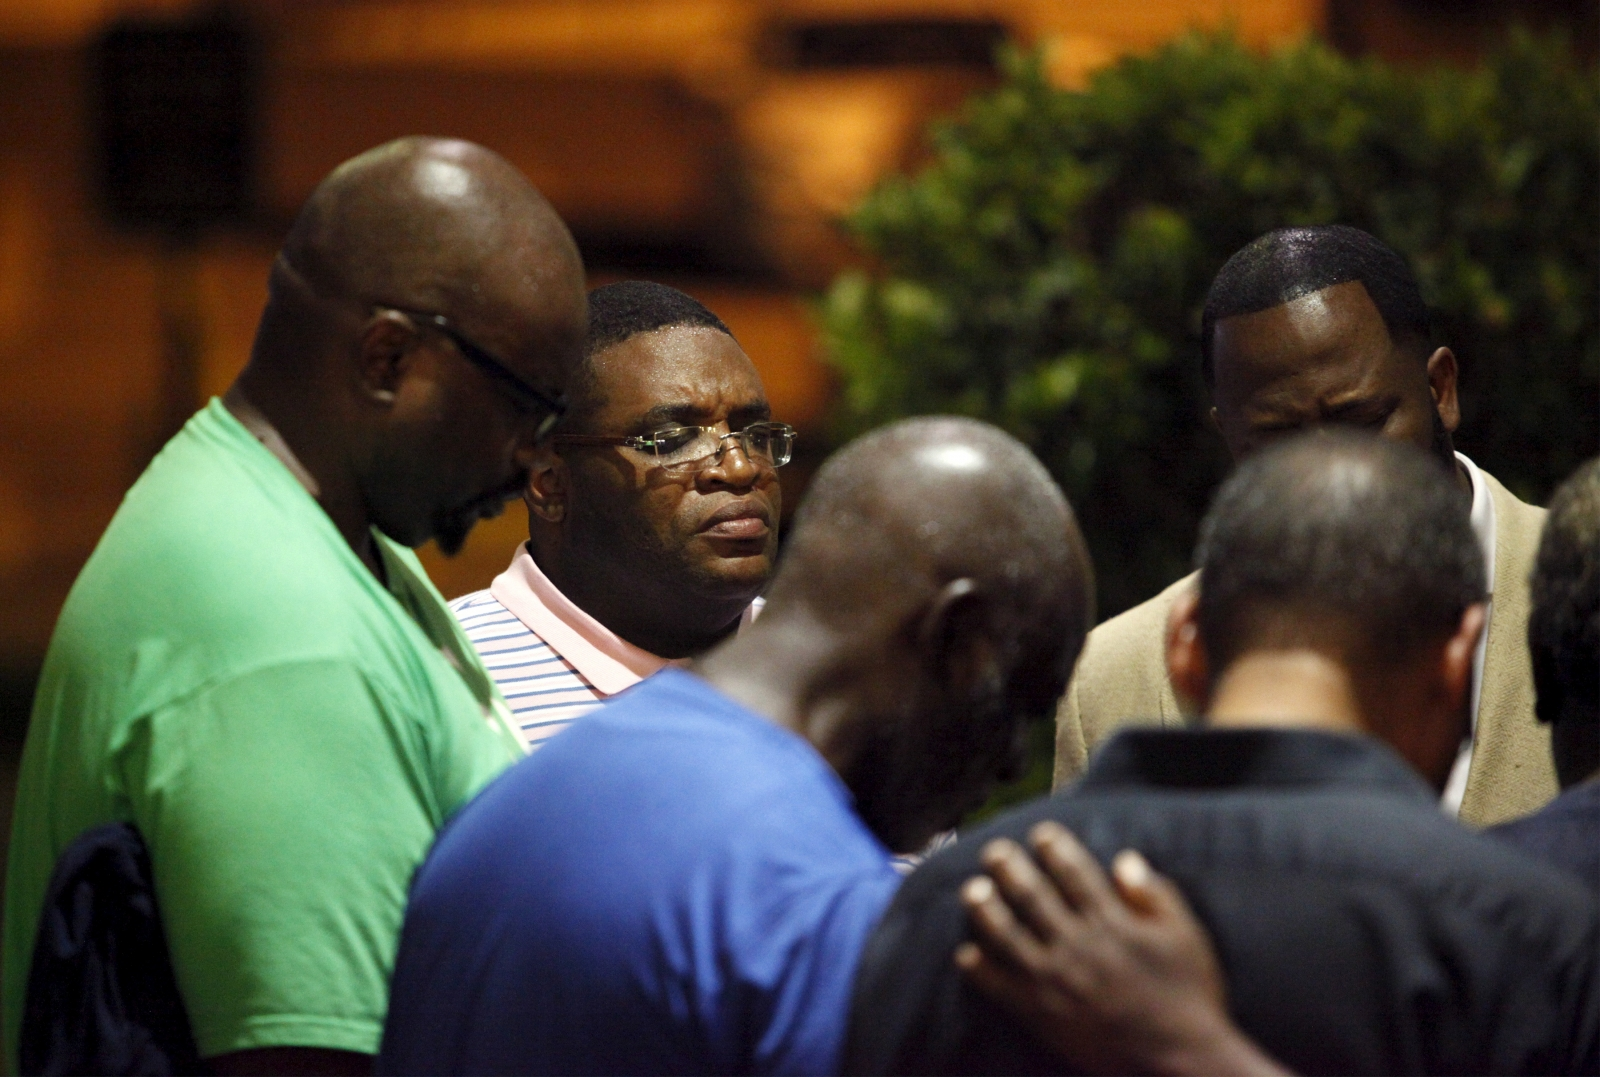 charleston south carolina shooting church